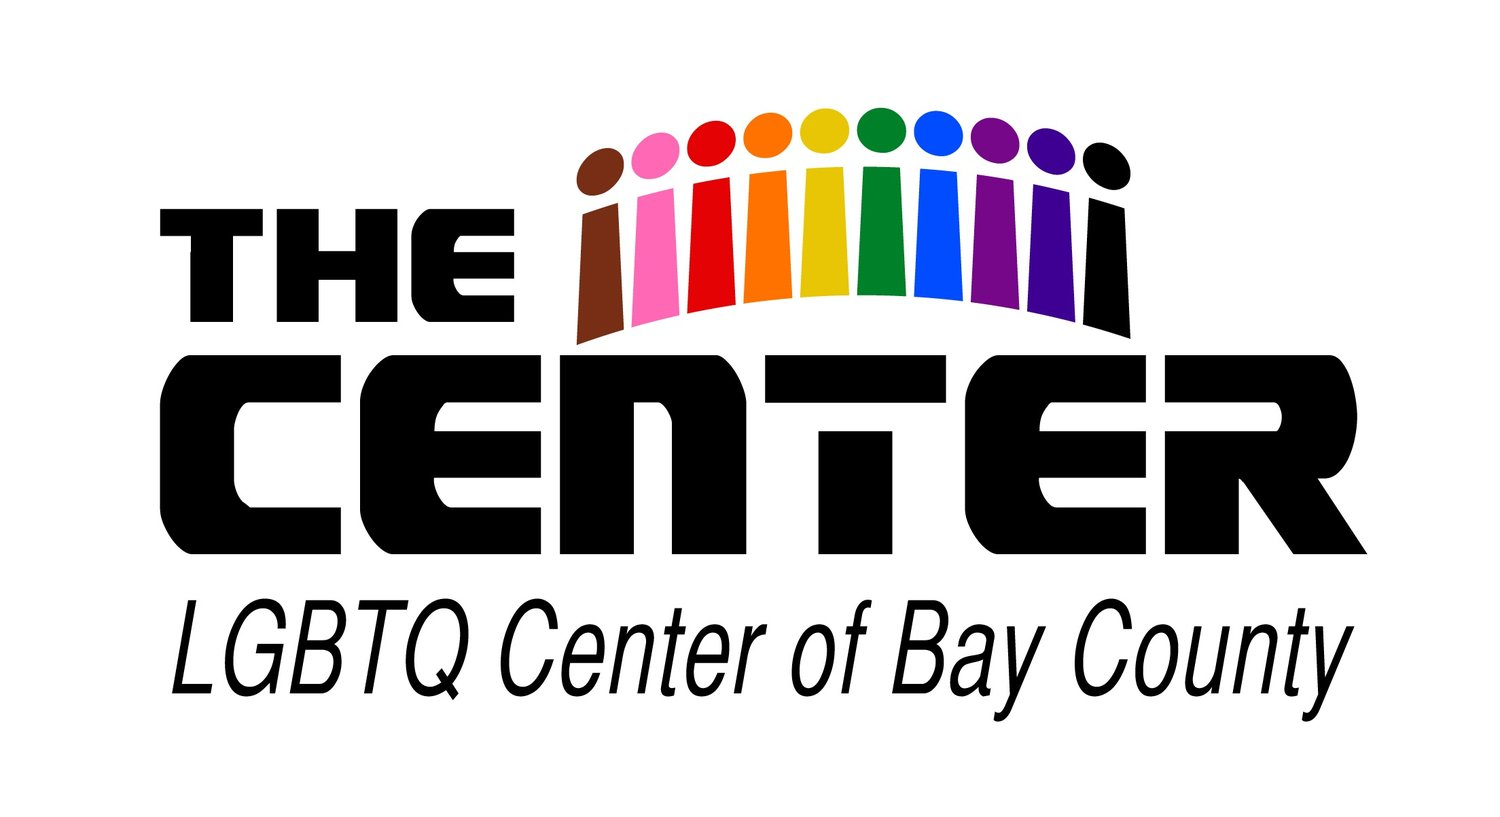 LGBTQ Center of Bay County